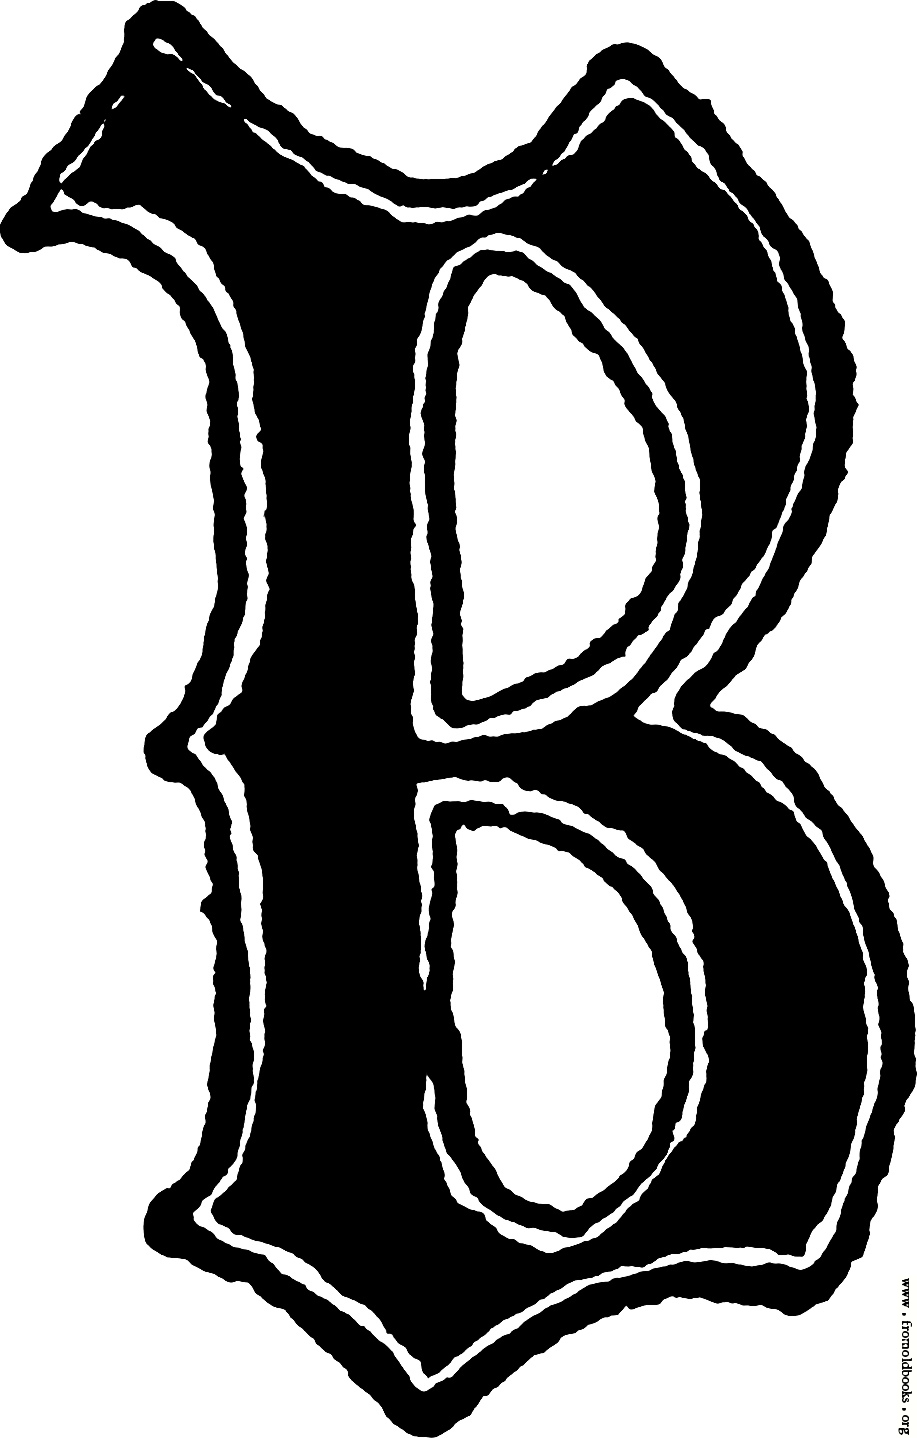 Calligraphic letter B in 15th century gothic style [image ...